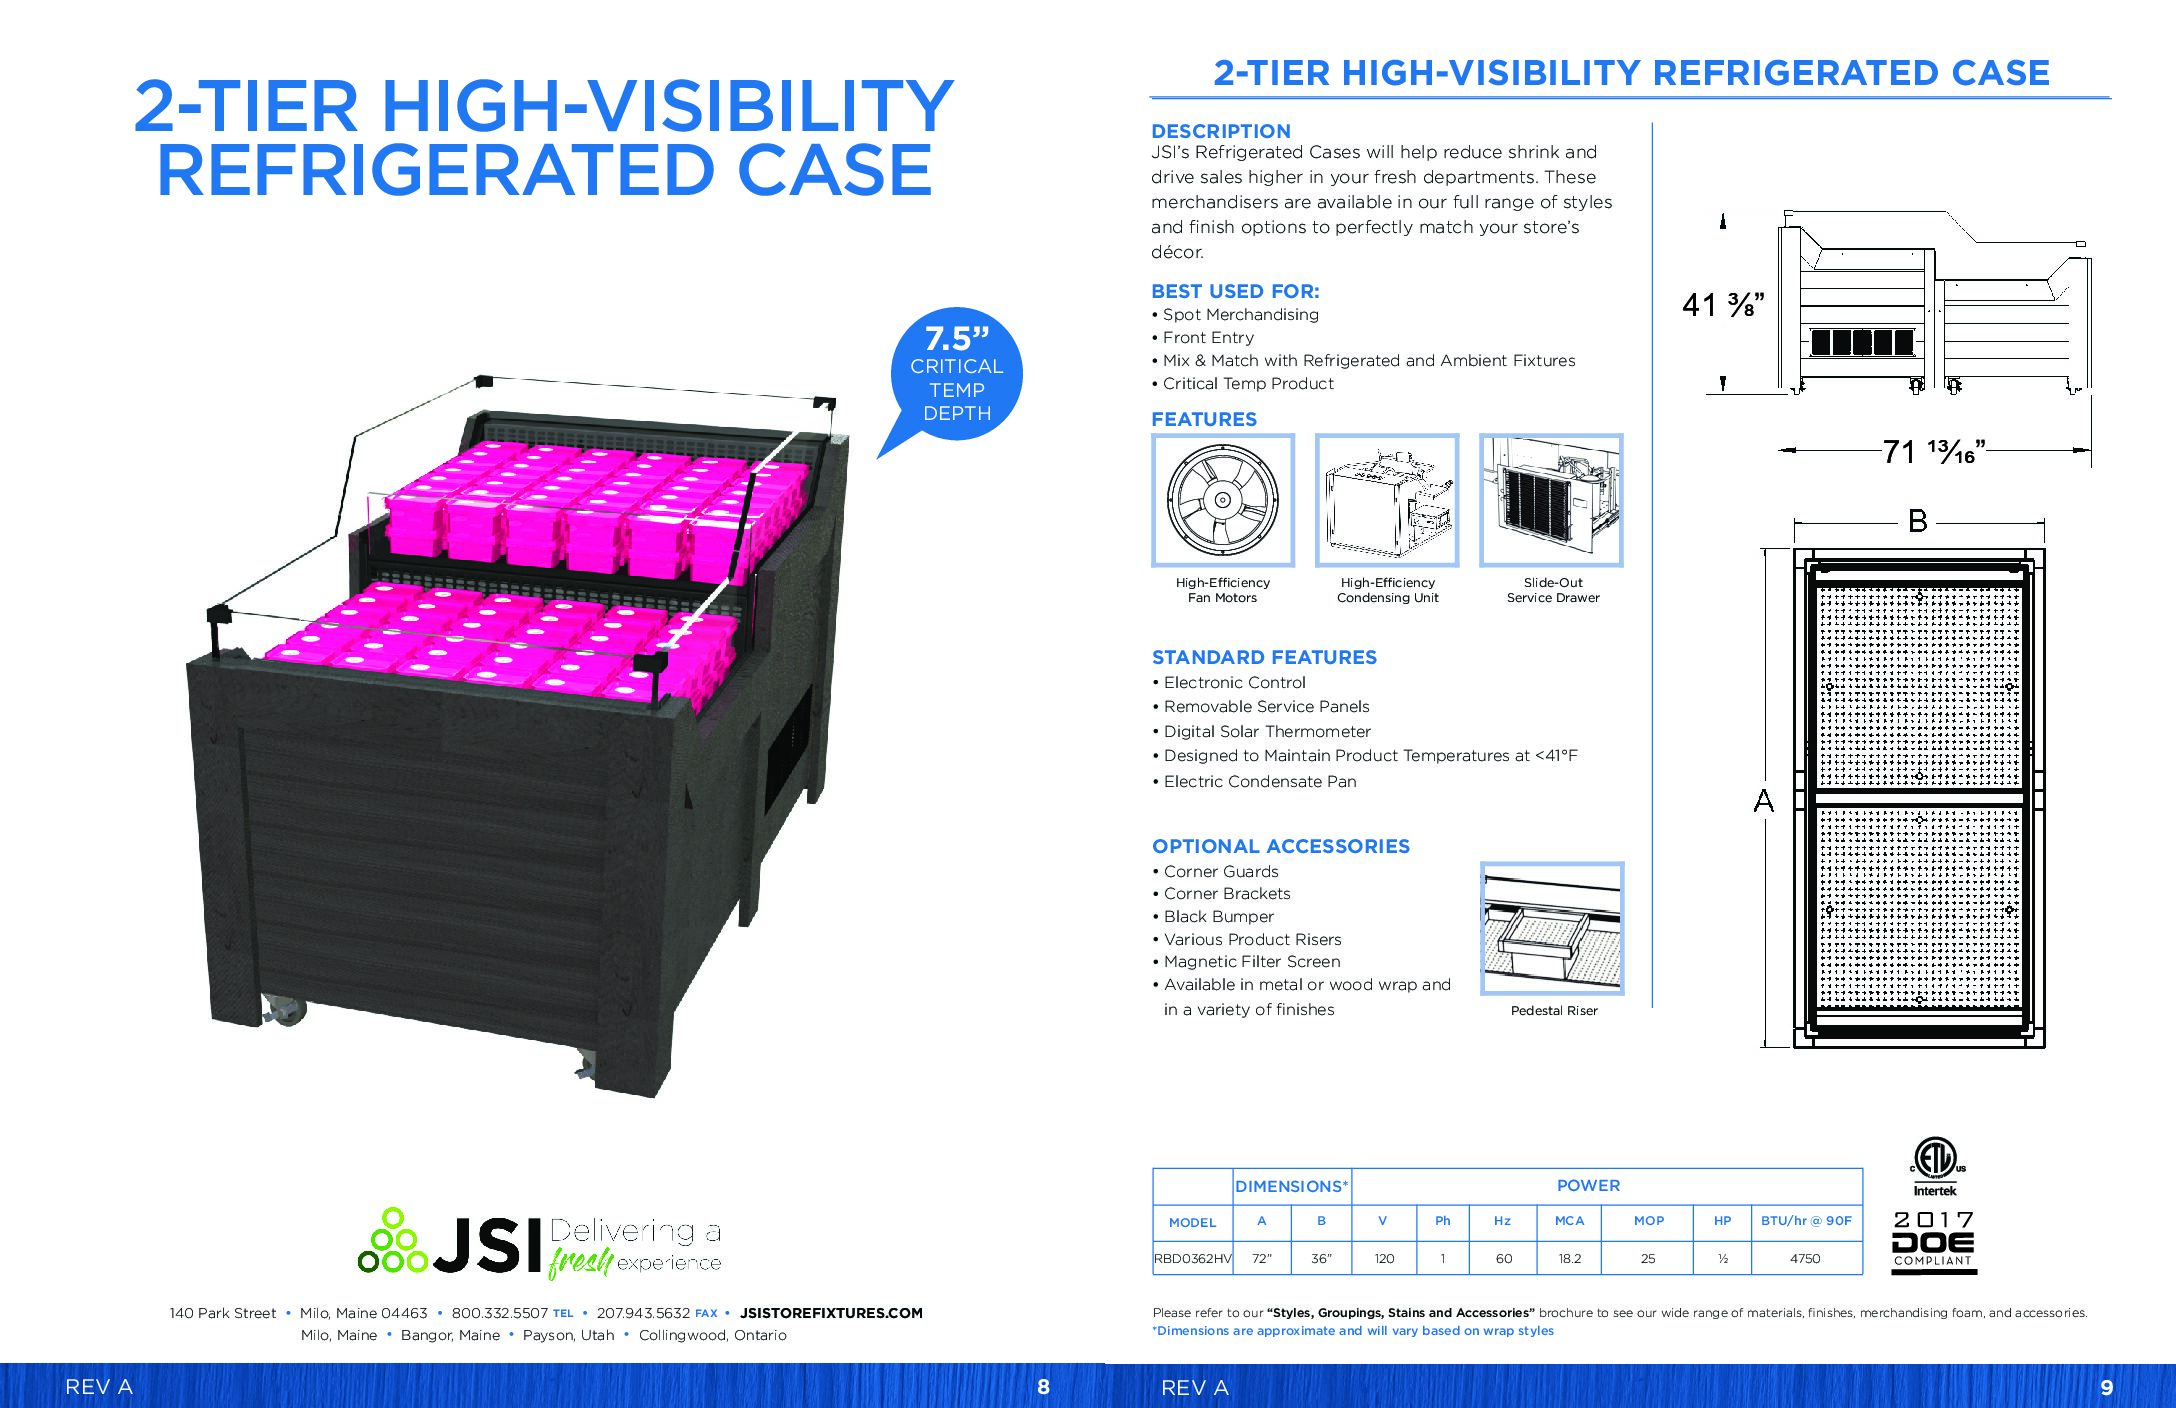 2-Tier High-Visibility Refrigerated Case (3'W) (PDF)